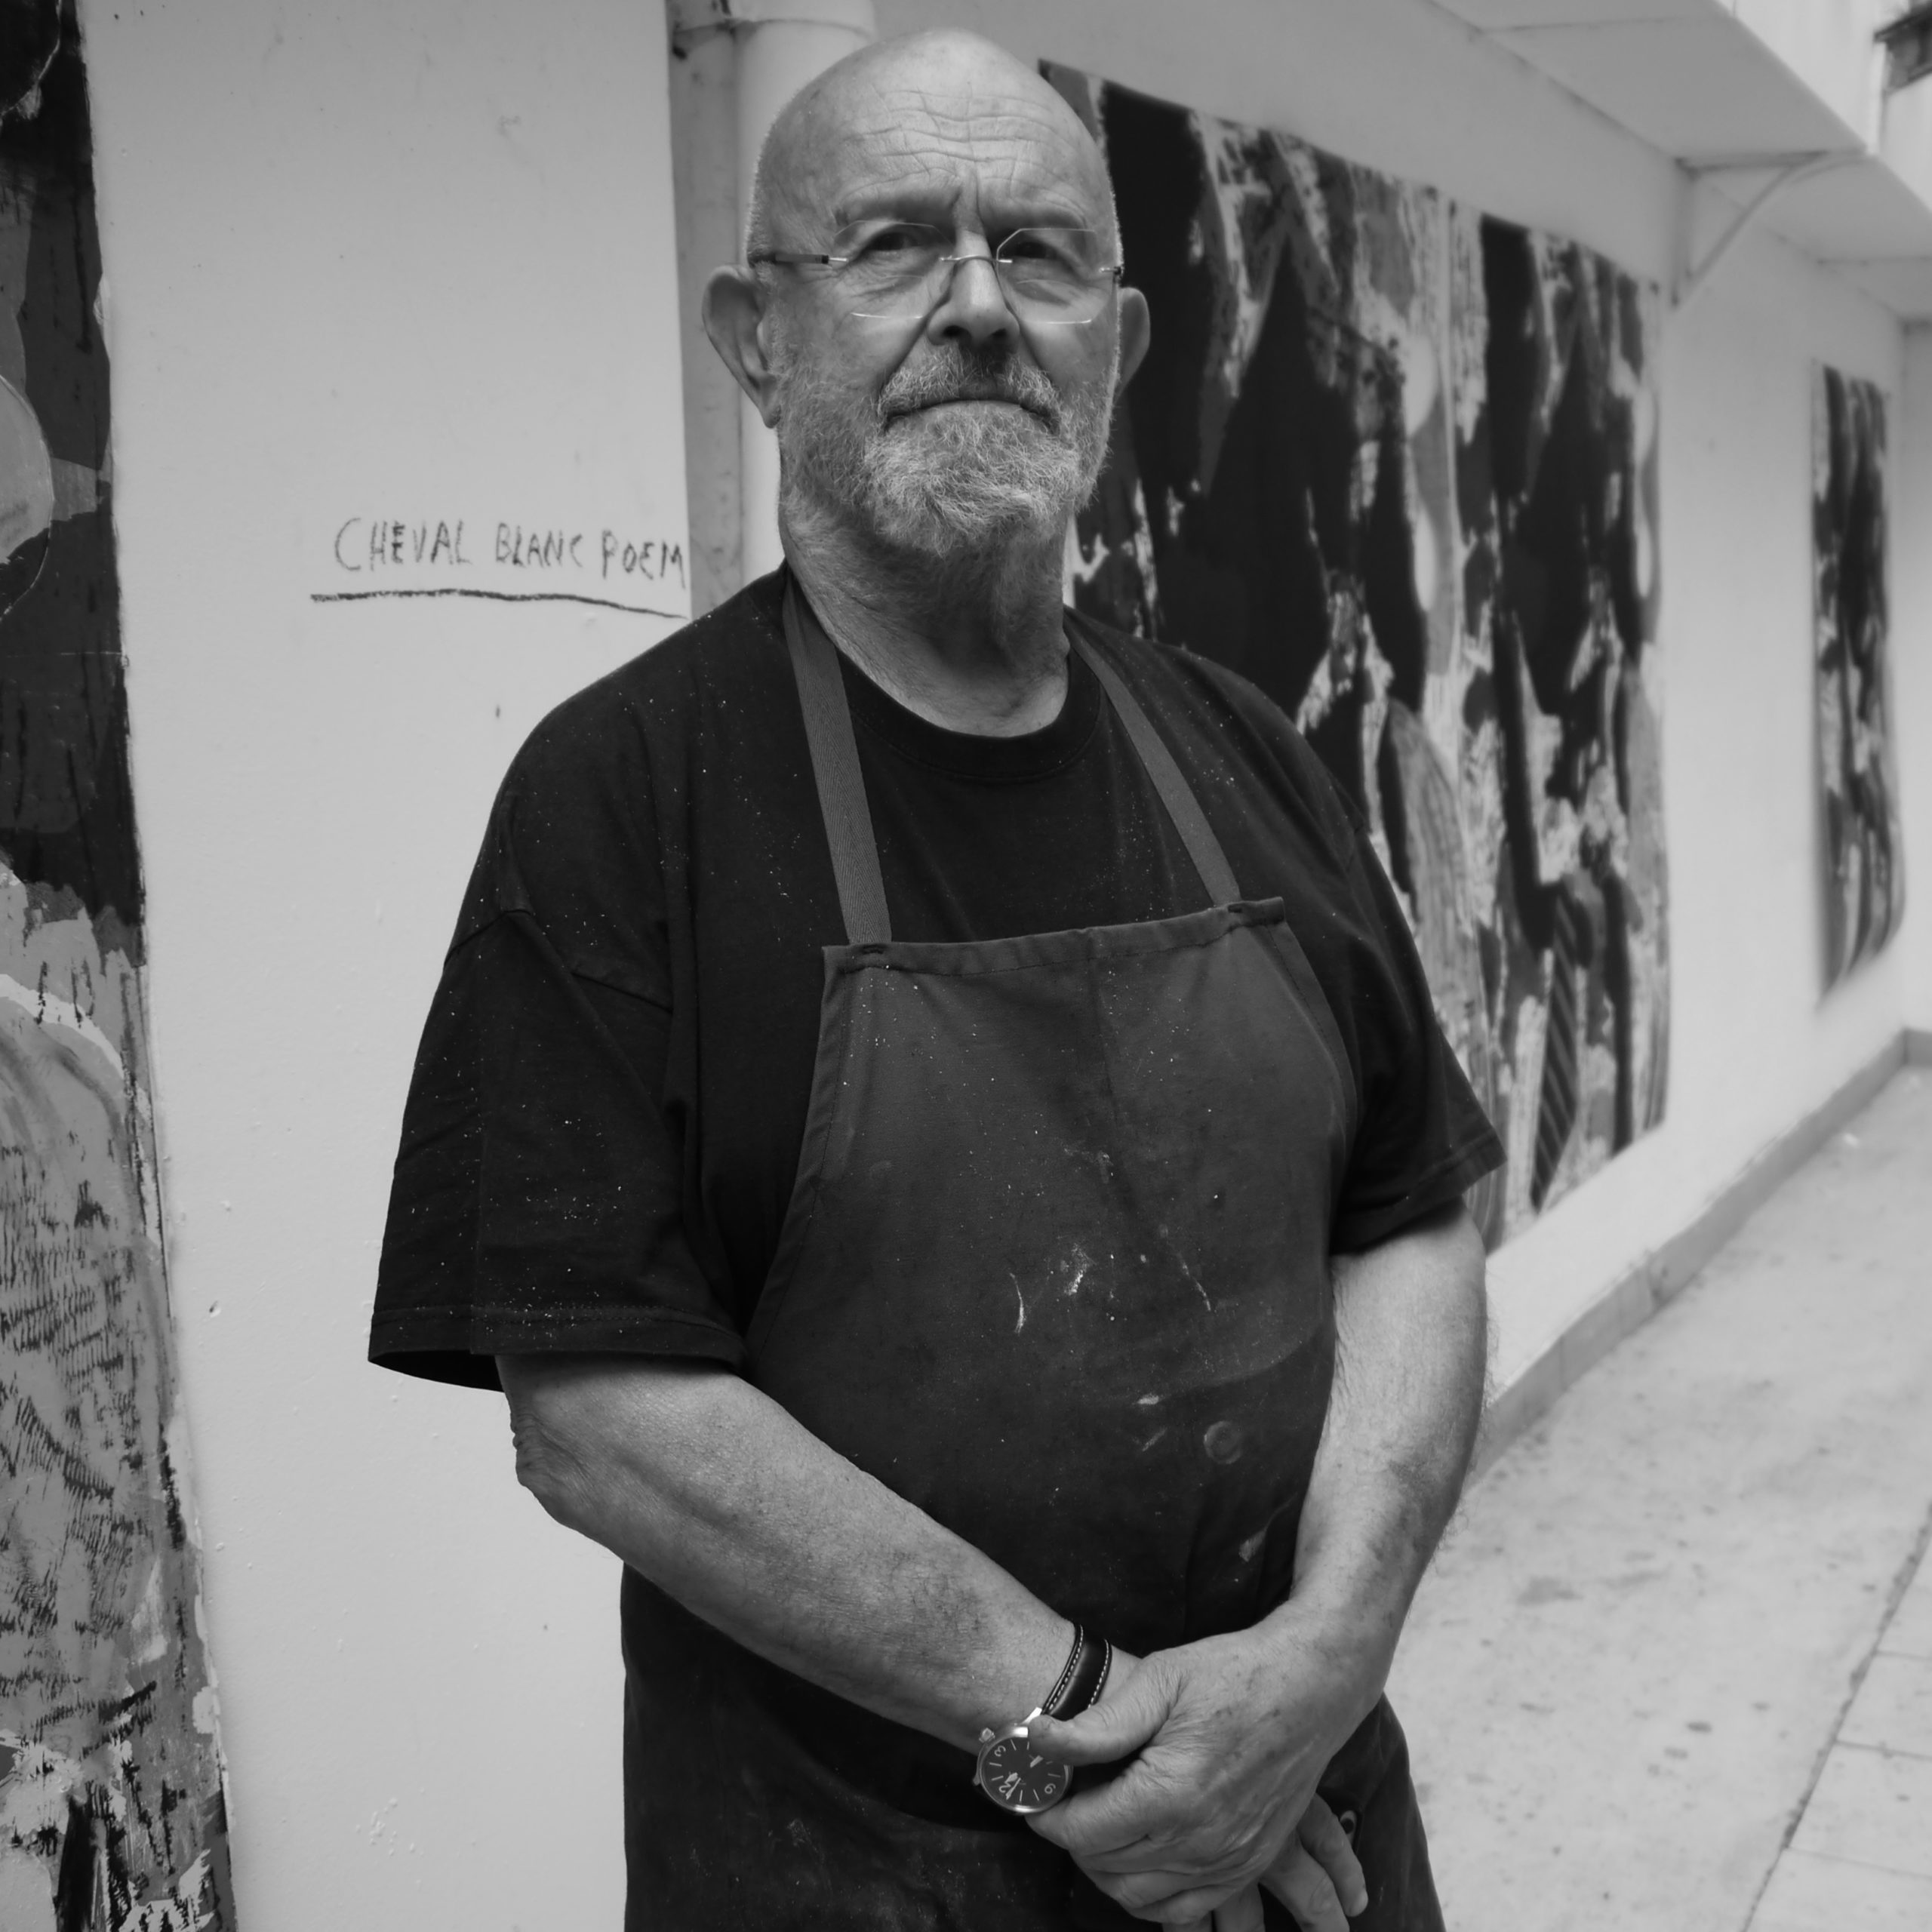 JIM DINE PORTRAIT, courtesy Galerie Templon Paris/Bruxelles